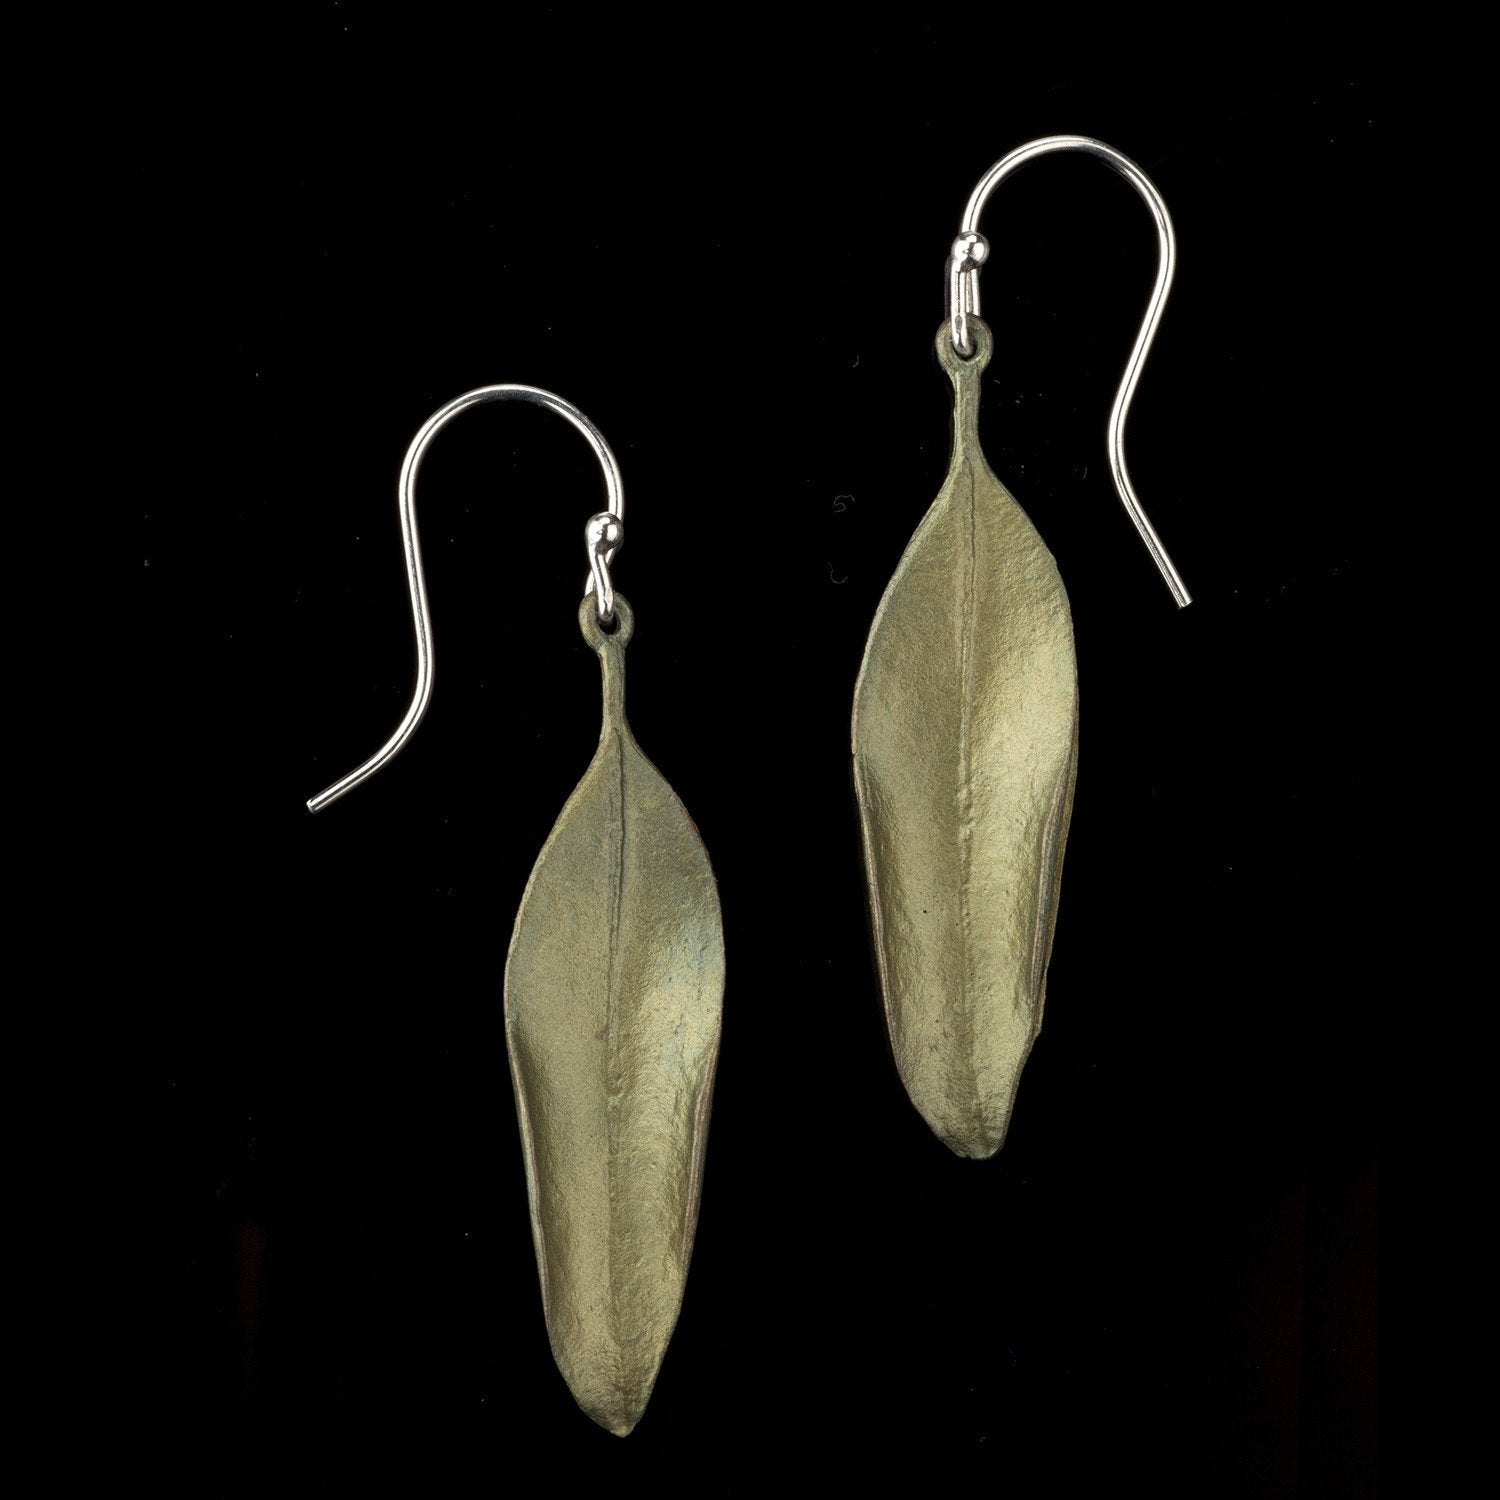 Eucalyptus Earrings - Mountain Laurel Wire